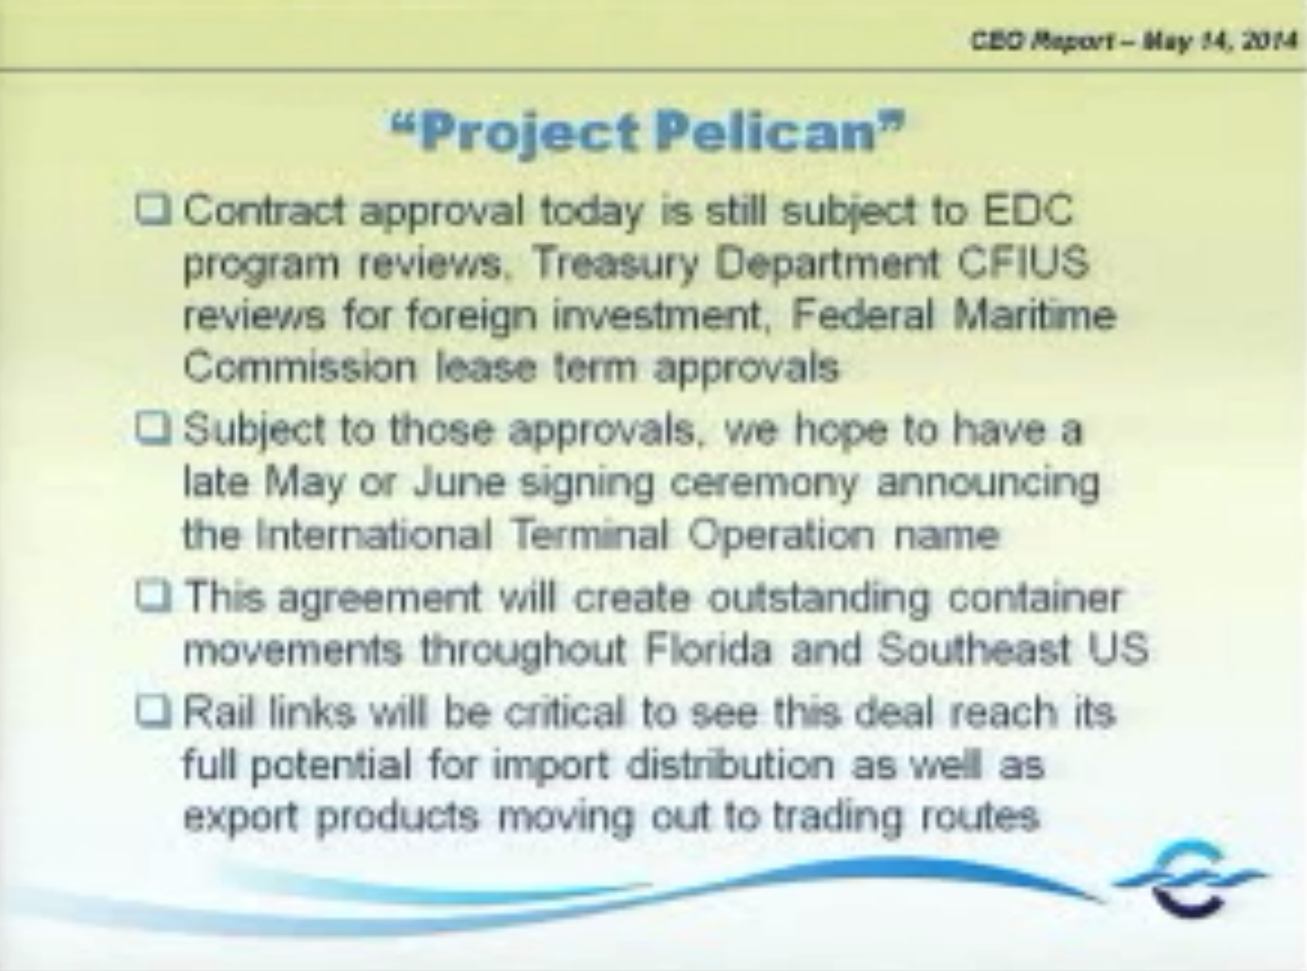 John Walsh's Project Pelican CEO Report. Source: Canaveral Port Authority